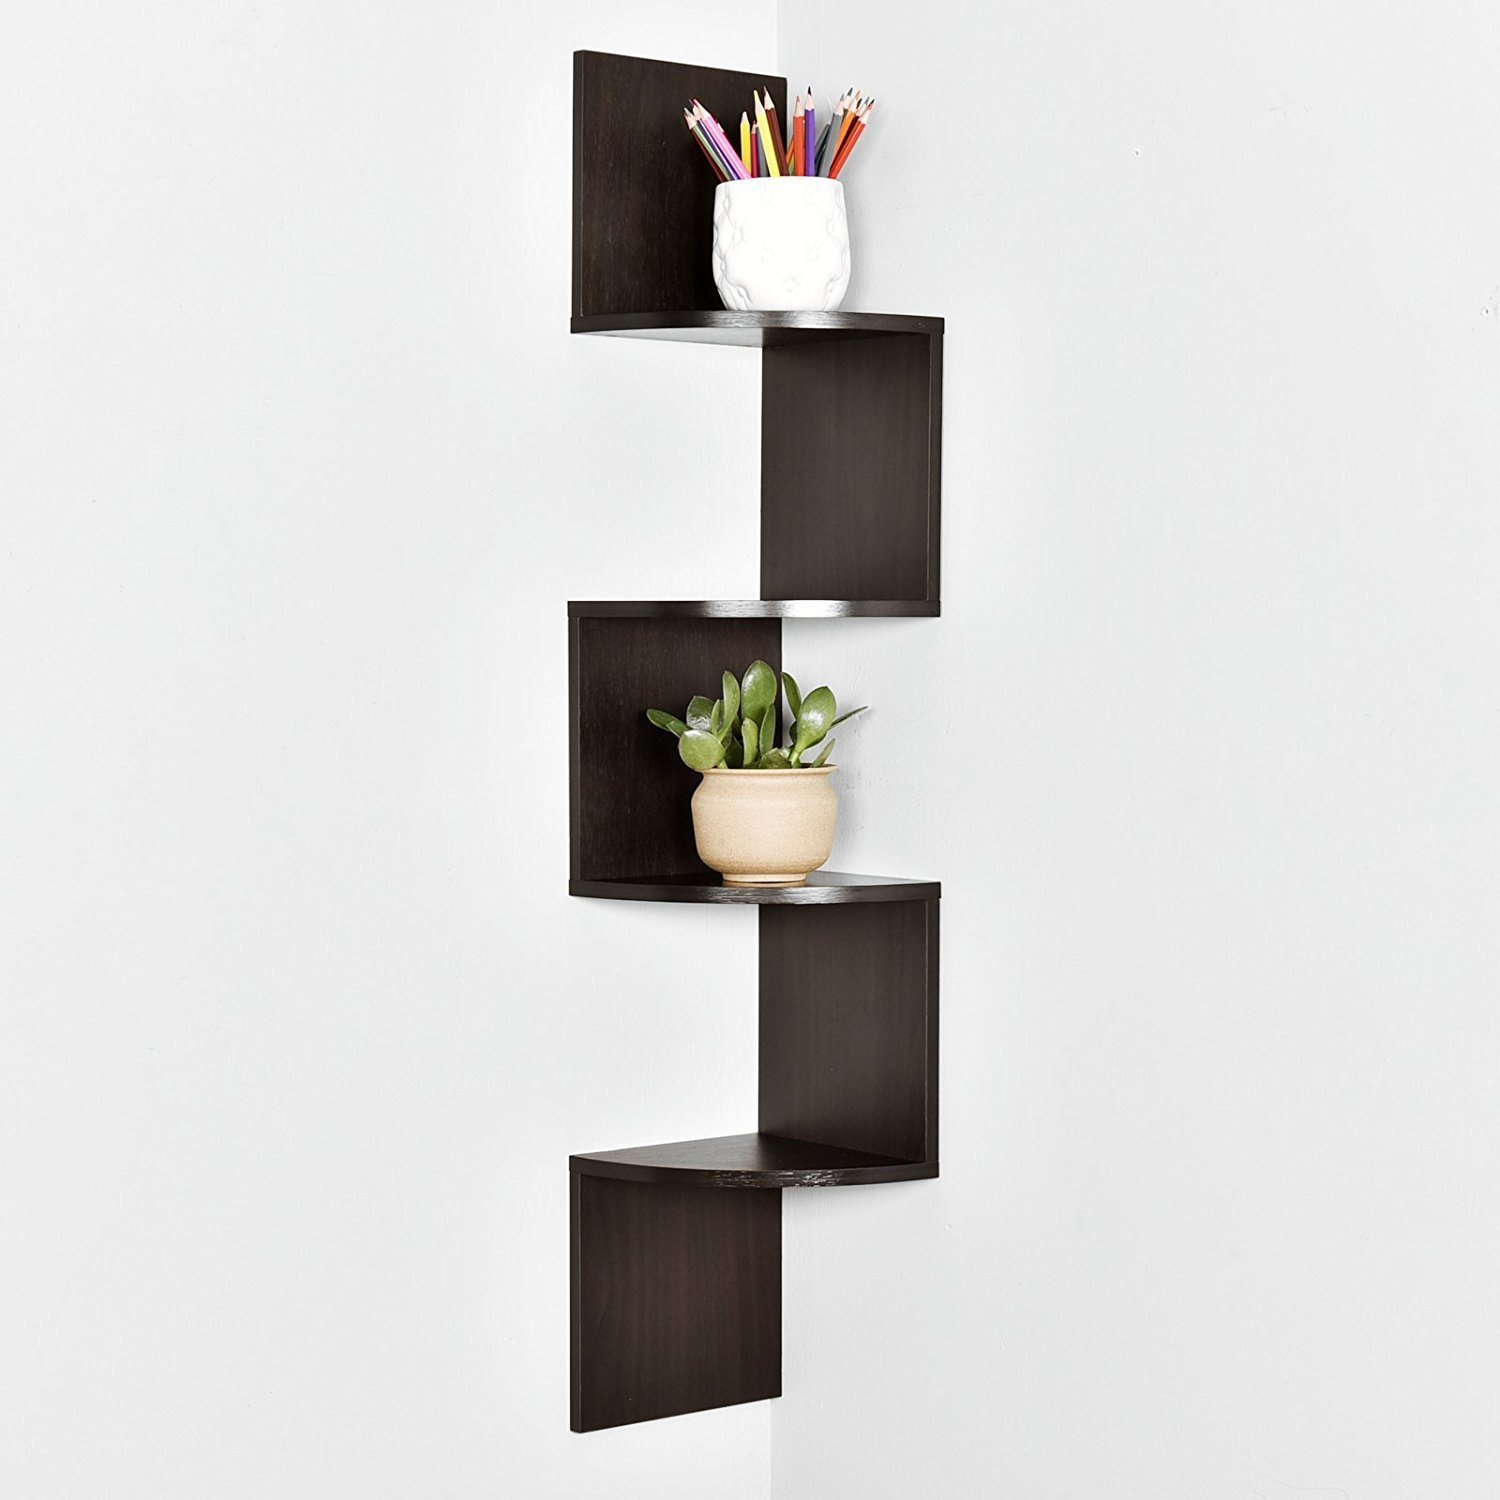 Zig Zag 4 Tier Corner Wall Shelf 40 25 H X 7 8 W X 7 8 T Wall Mounted Corner Wall Shelf For Bed Room Living Room Kitchen Corner Wall Shelves Shelves Wall Shelves